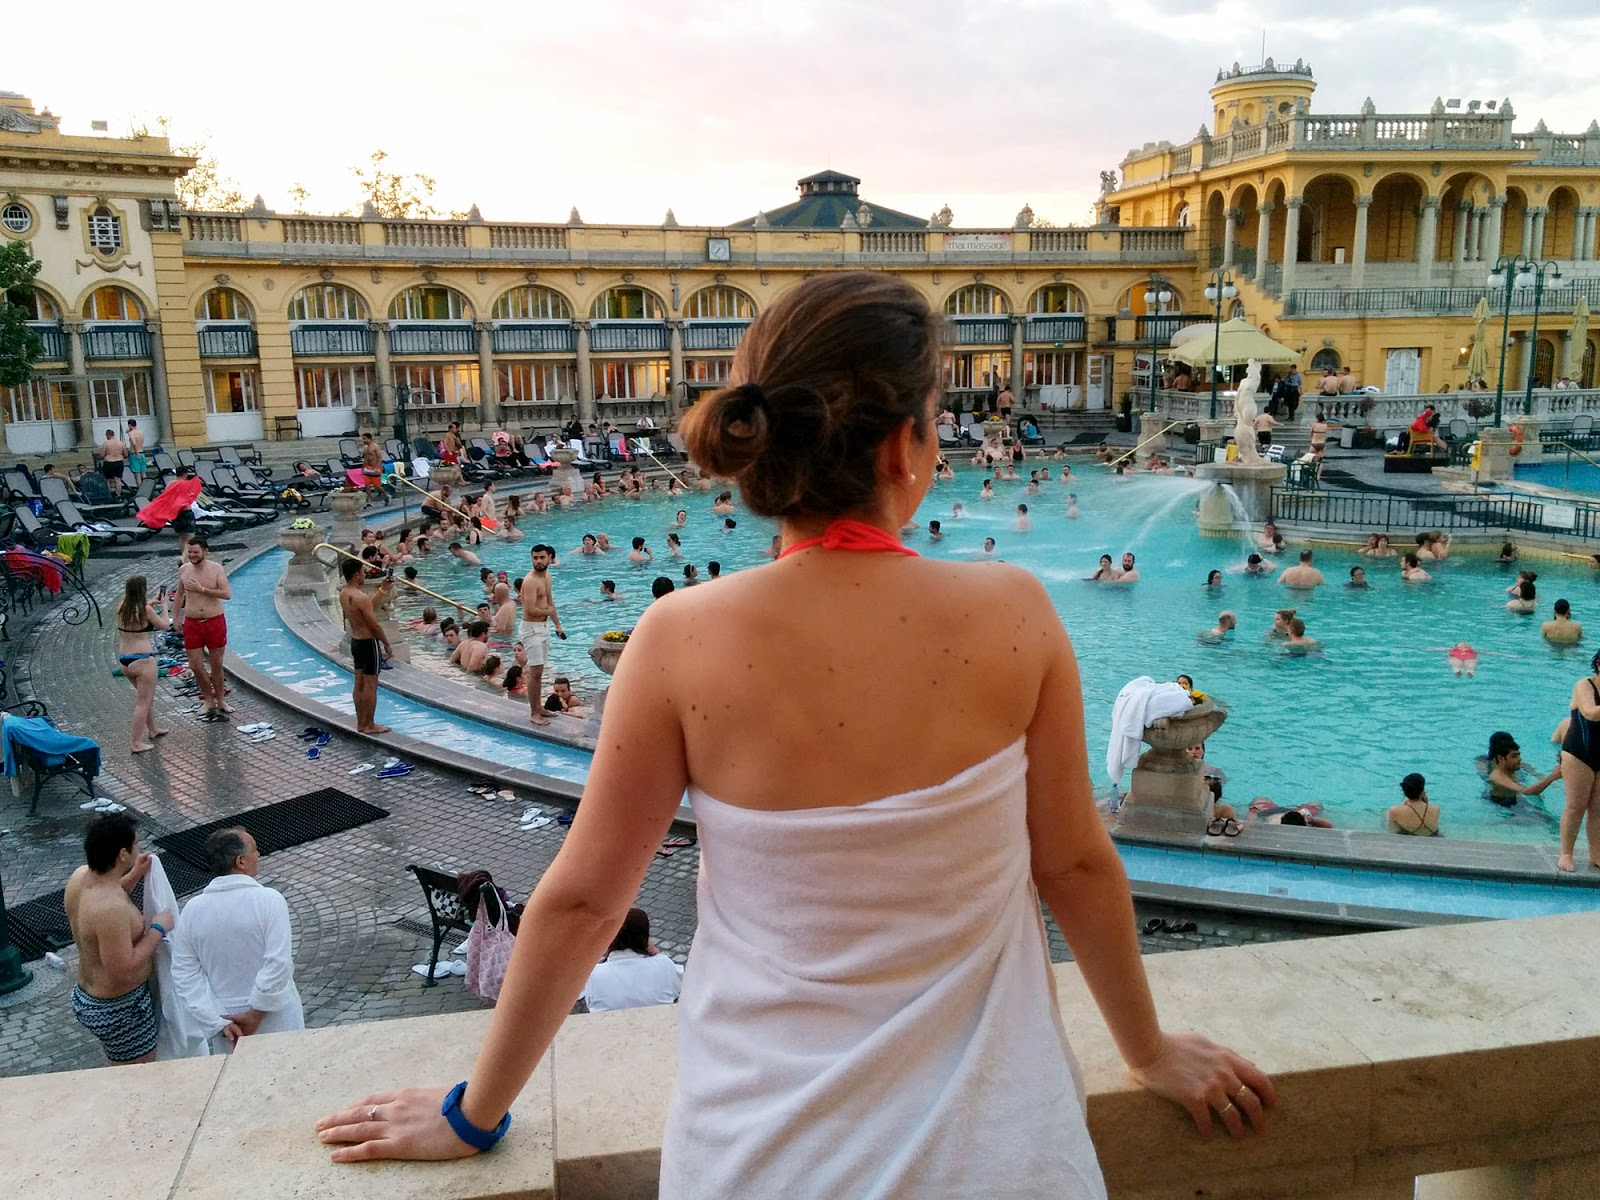 szechenyi thermal baths budapest instagrammable instagram worthy spot photography